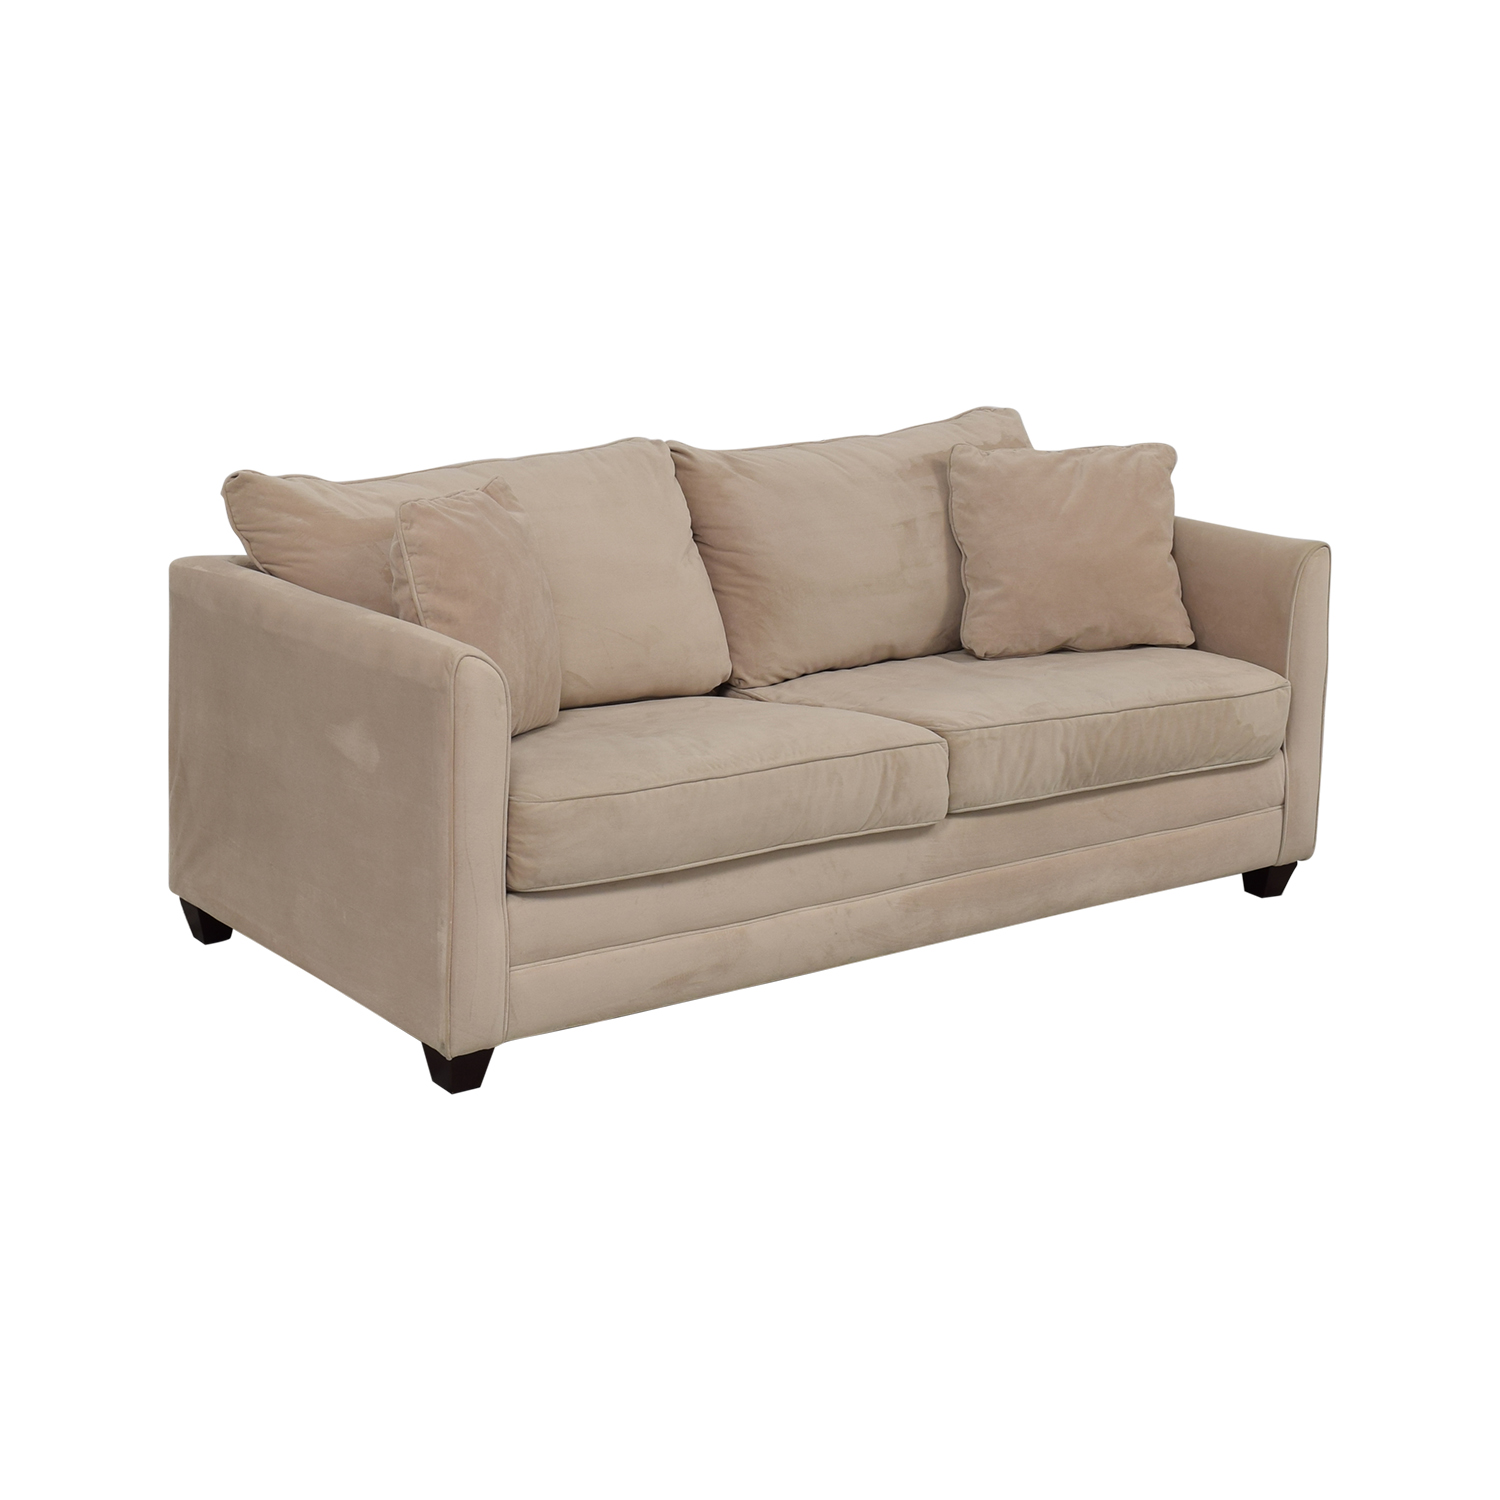 Martha Stewart Home Martha Stewart Queen Sleeper Sofa light brown